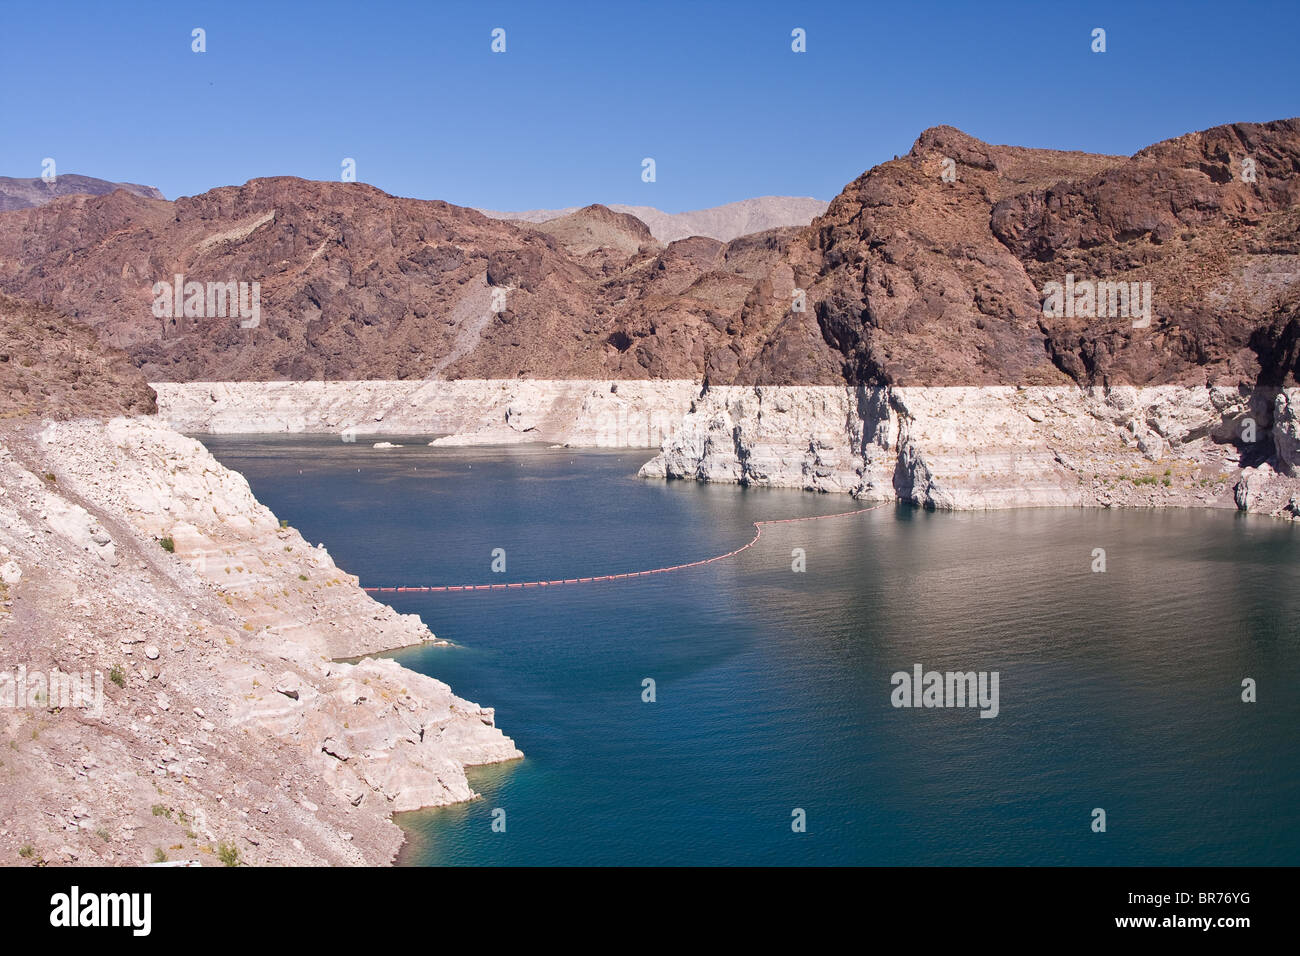 View of Lake Mead from Hoover dam with extremely low water level - environmental concept Stock Photo